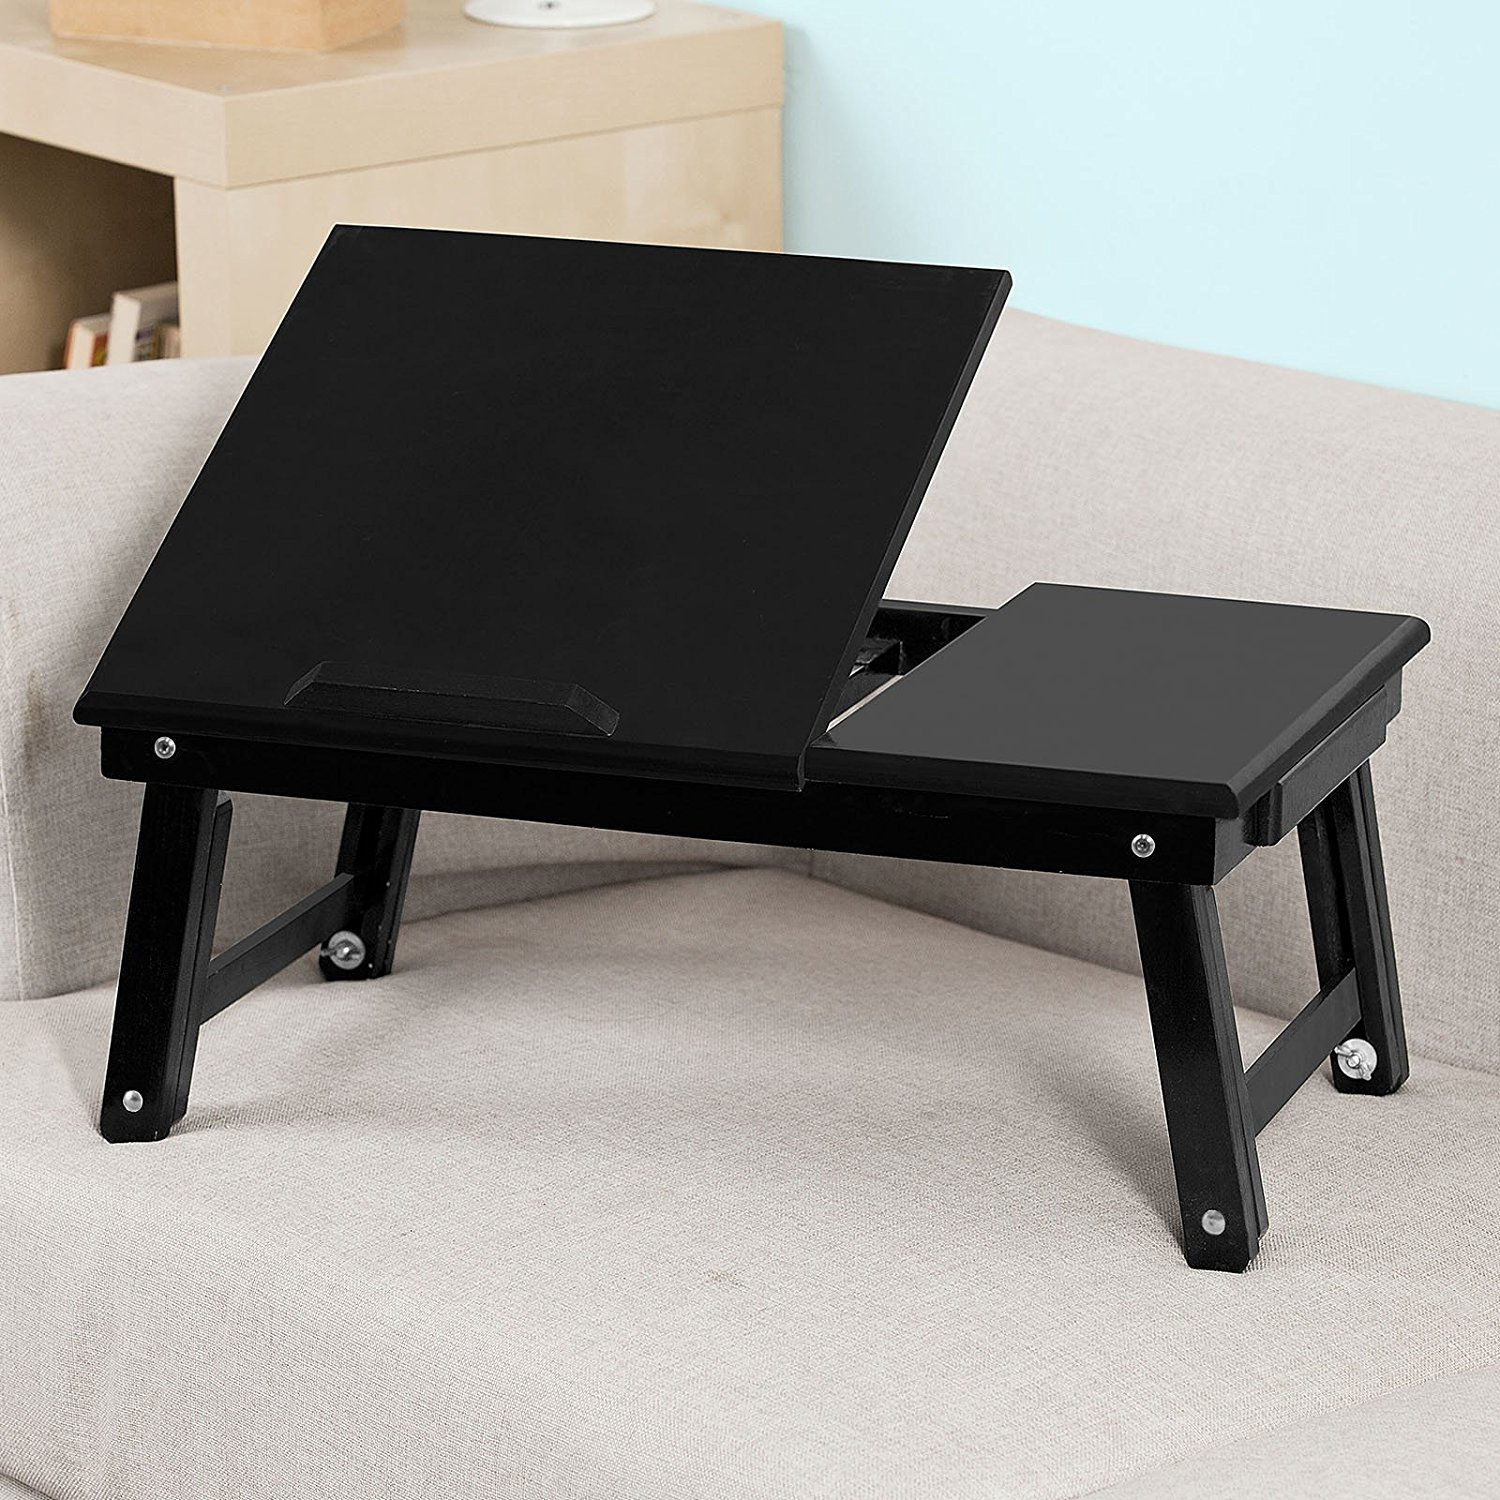 Sobuy Shop Buy Sobuy Folding Wood Food Breakfast Table Bed Tray Table Desk